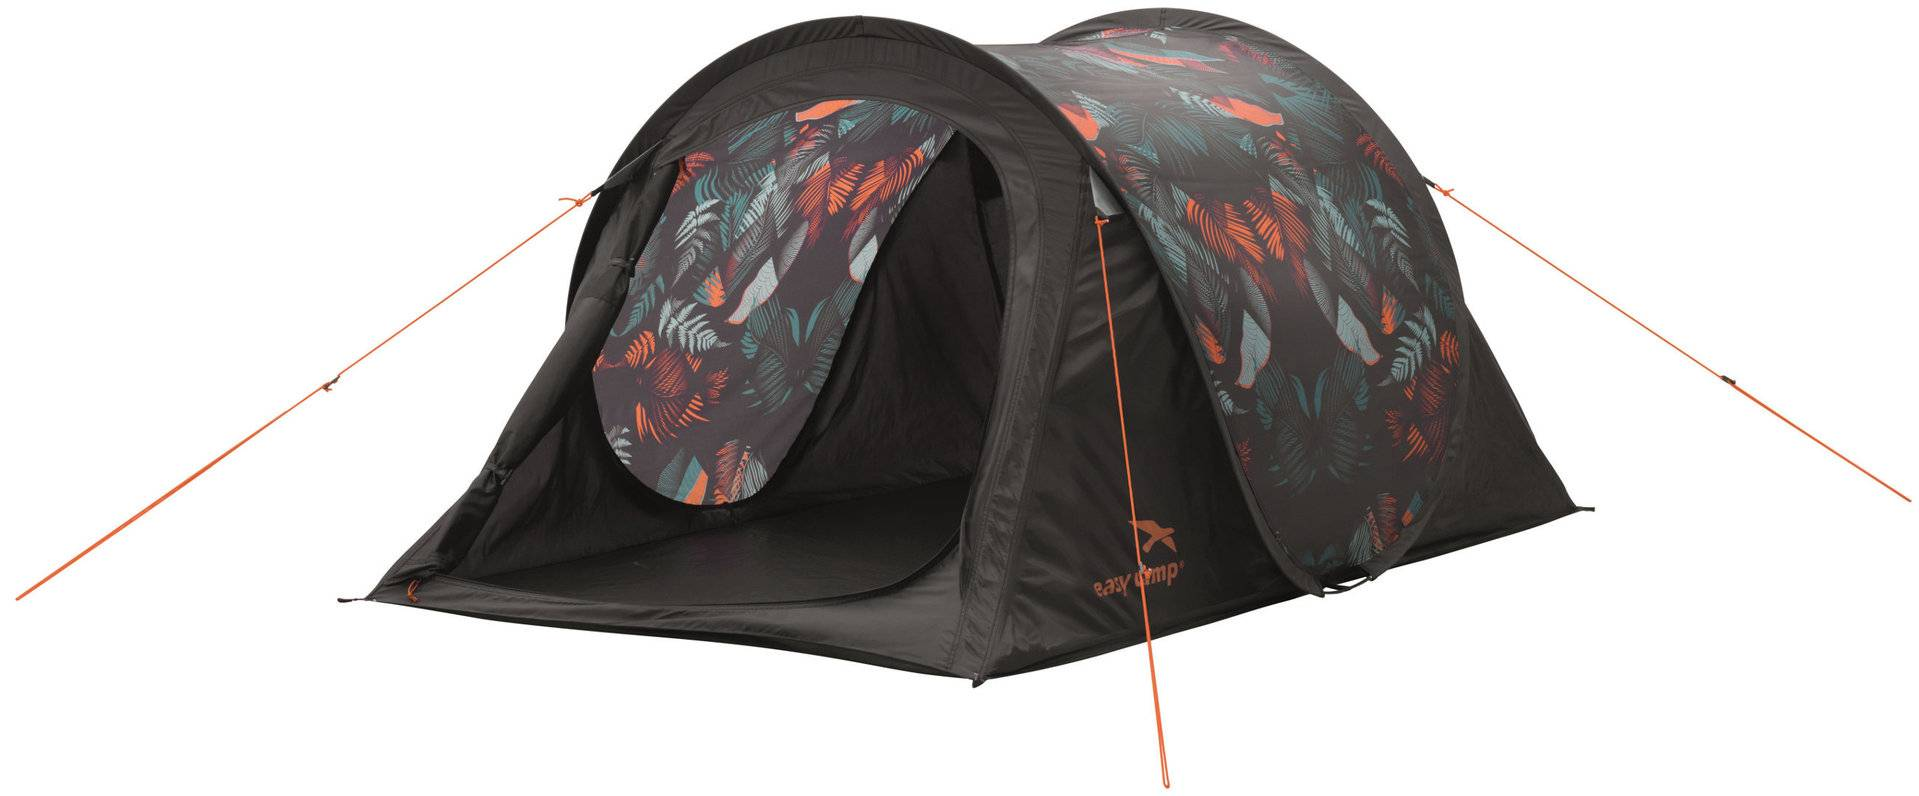 Easy Camp Nightden Tent Black One Size